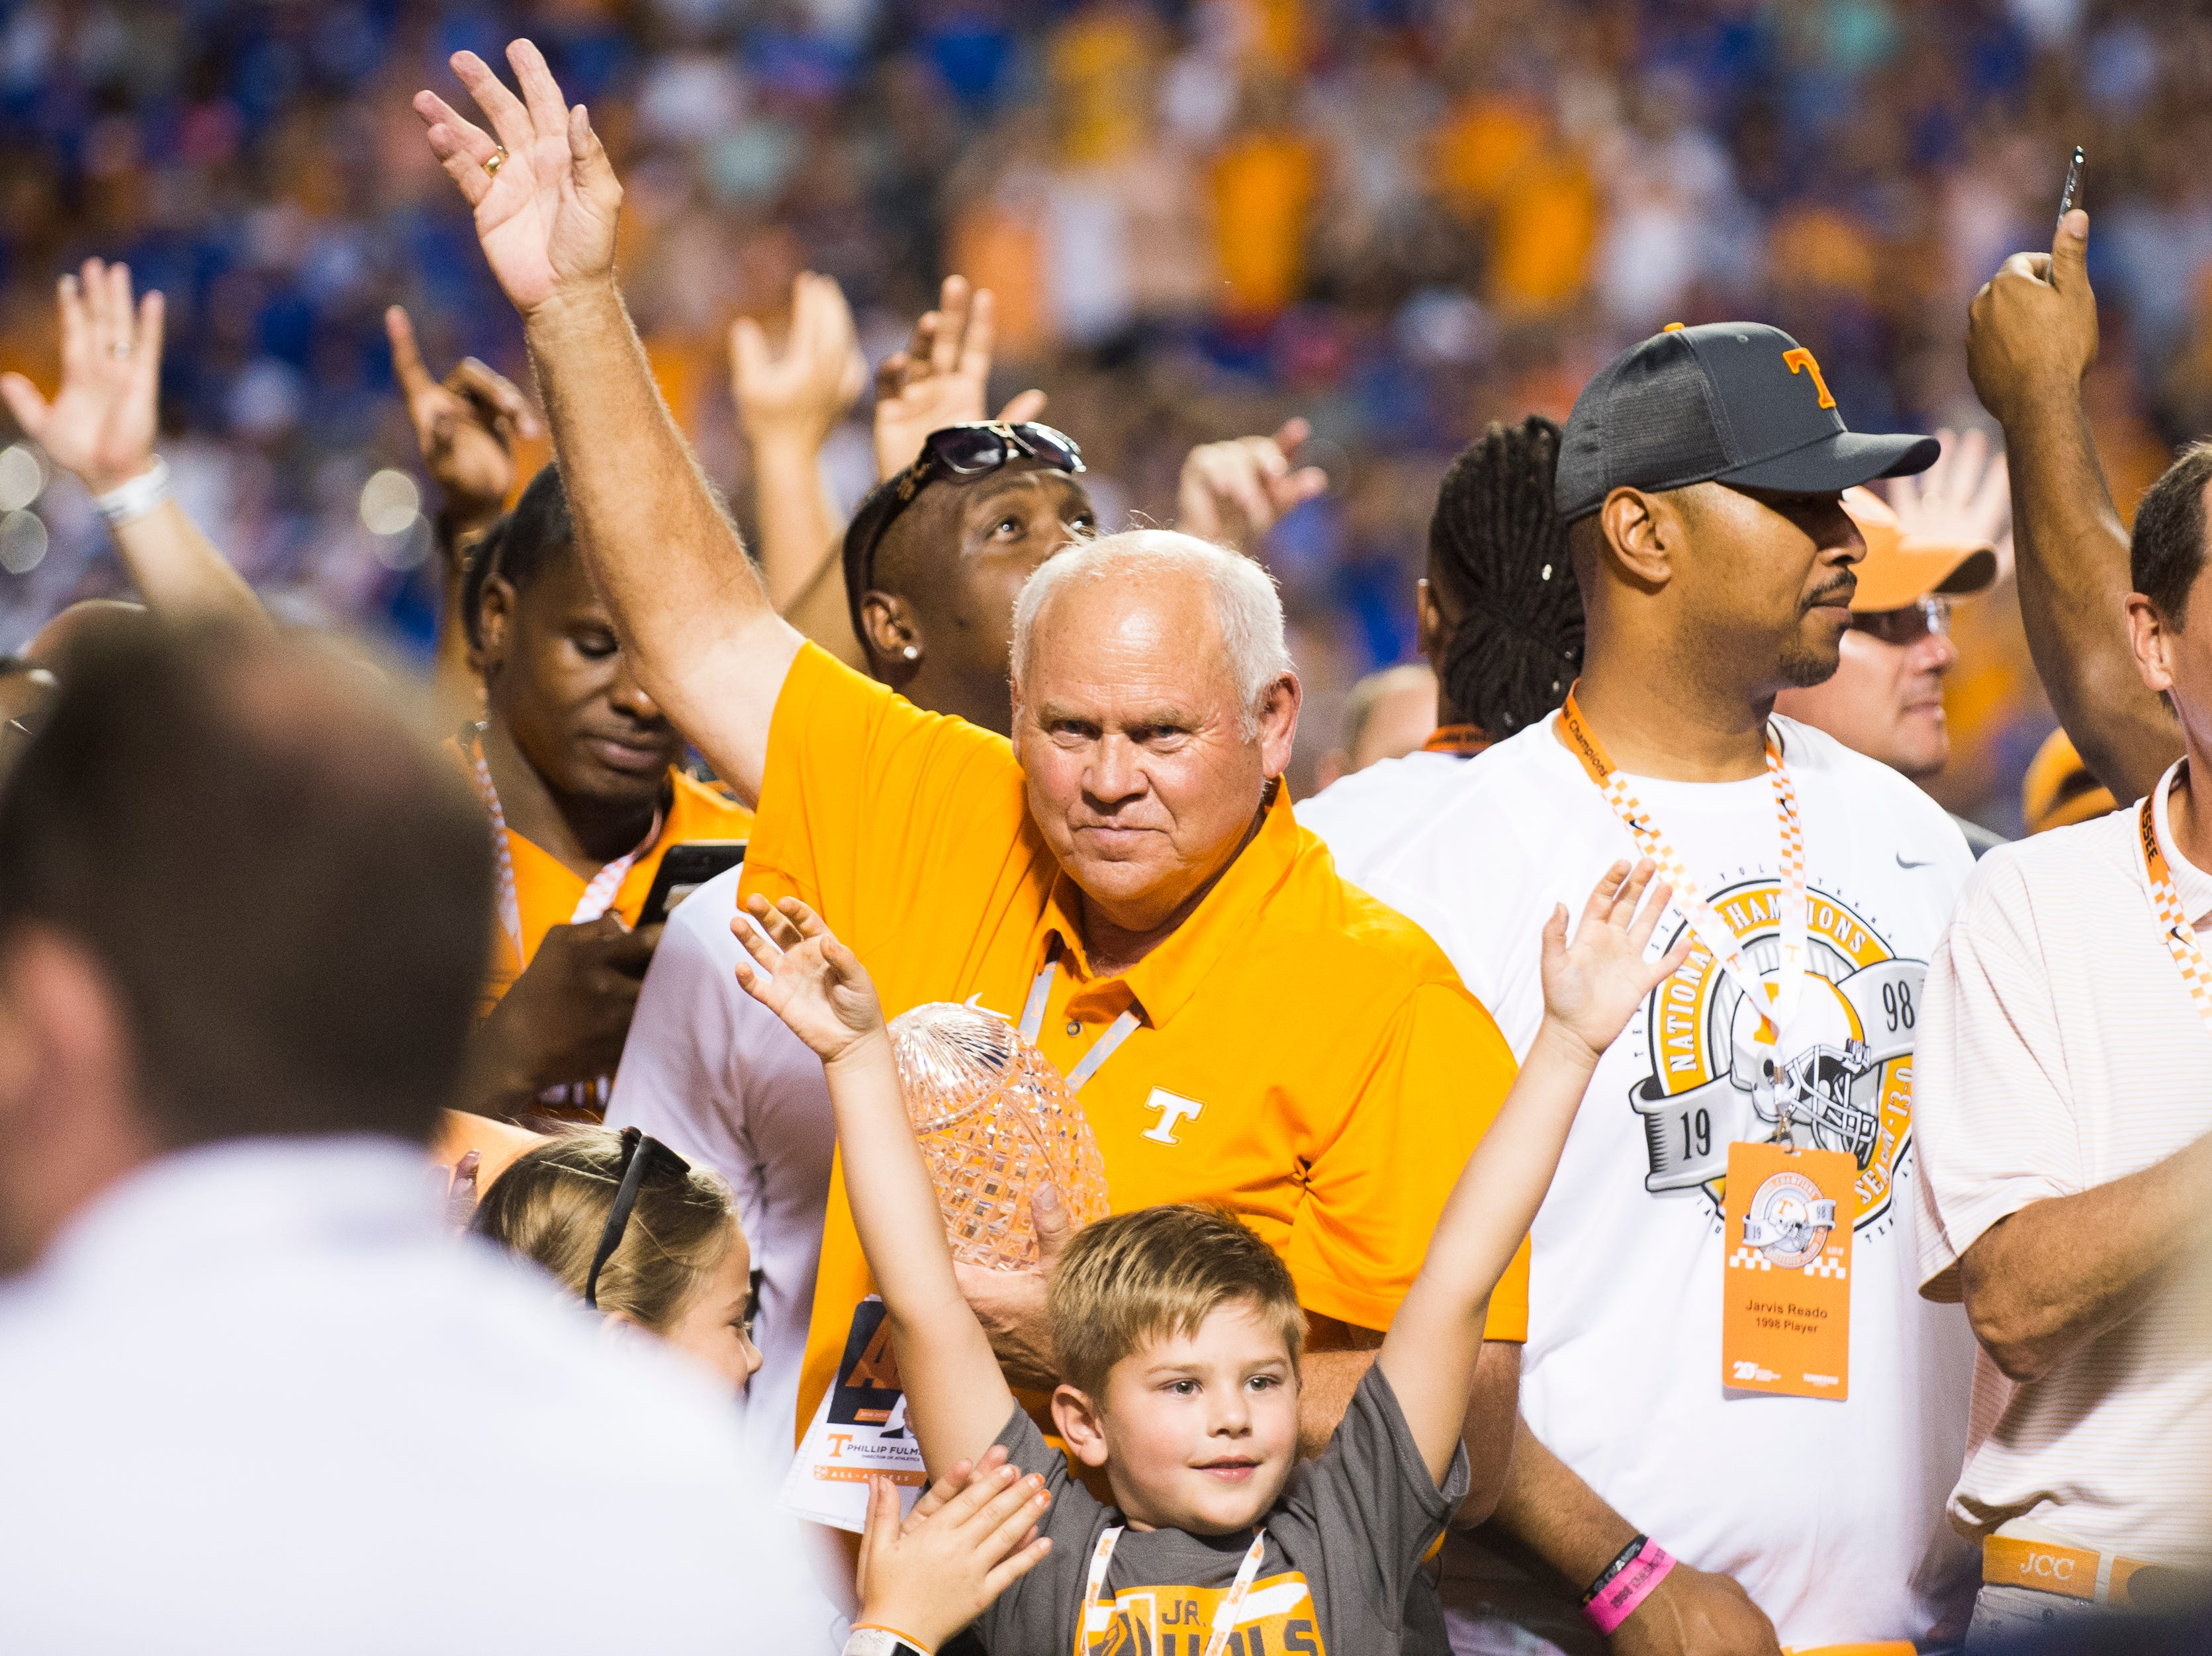 Phillip Fulmer celebrates with the 1998 championship team during a game between Tennessee and Florida at Neyland Stadium in Knoxville, Tennessee on Saturday, September 22, 2018.